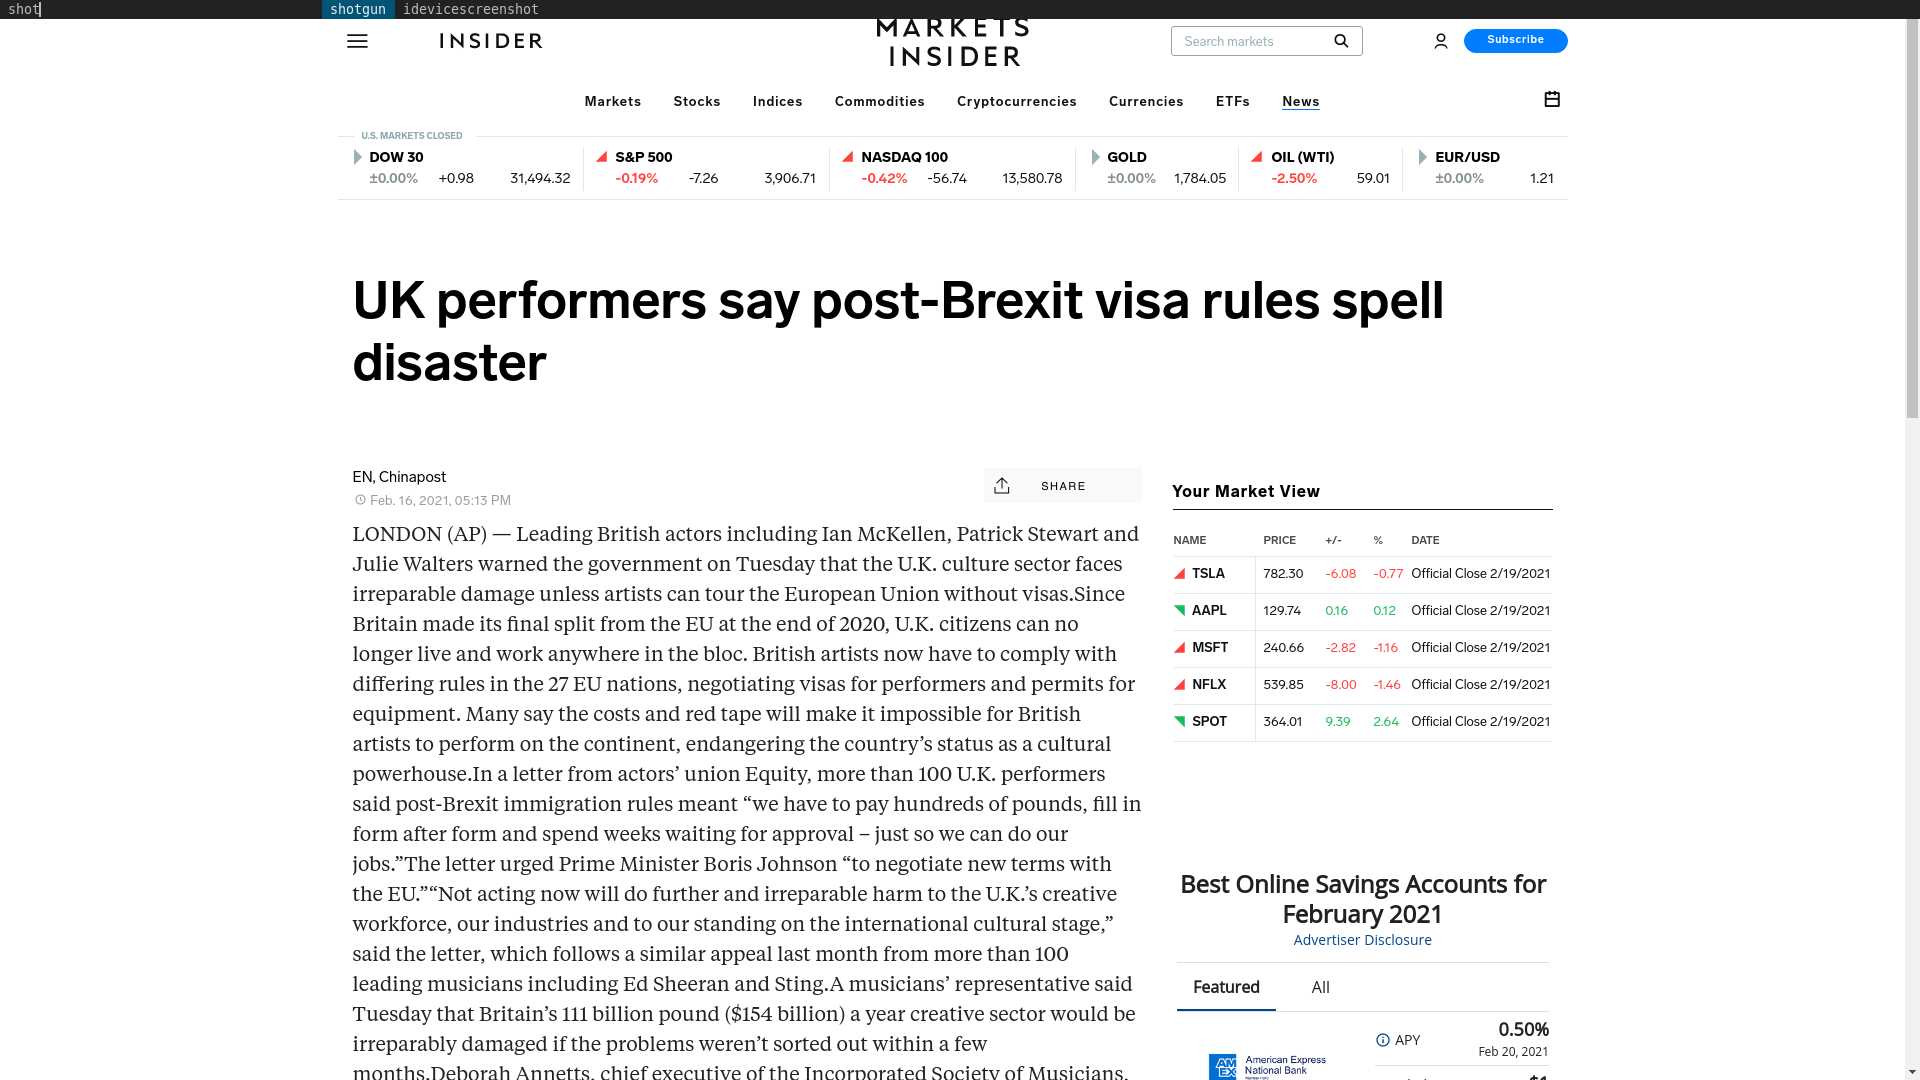 Fairness Rocks News UK performers say post-Brexit visa rules spell disaster